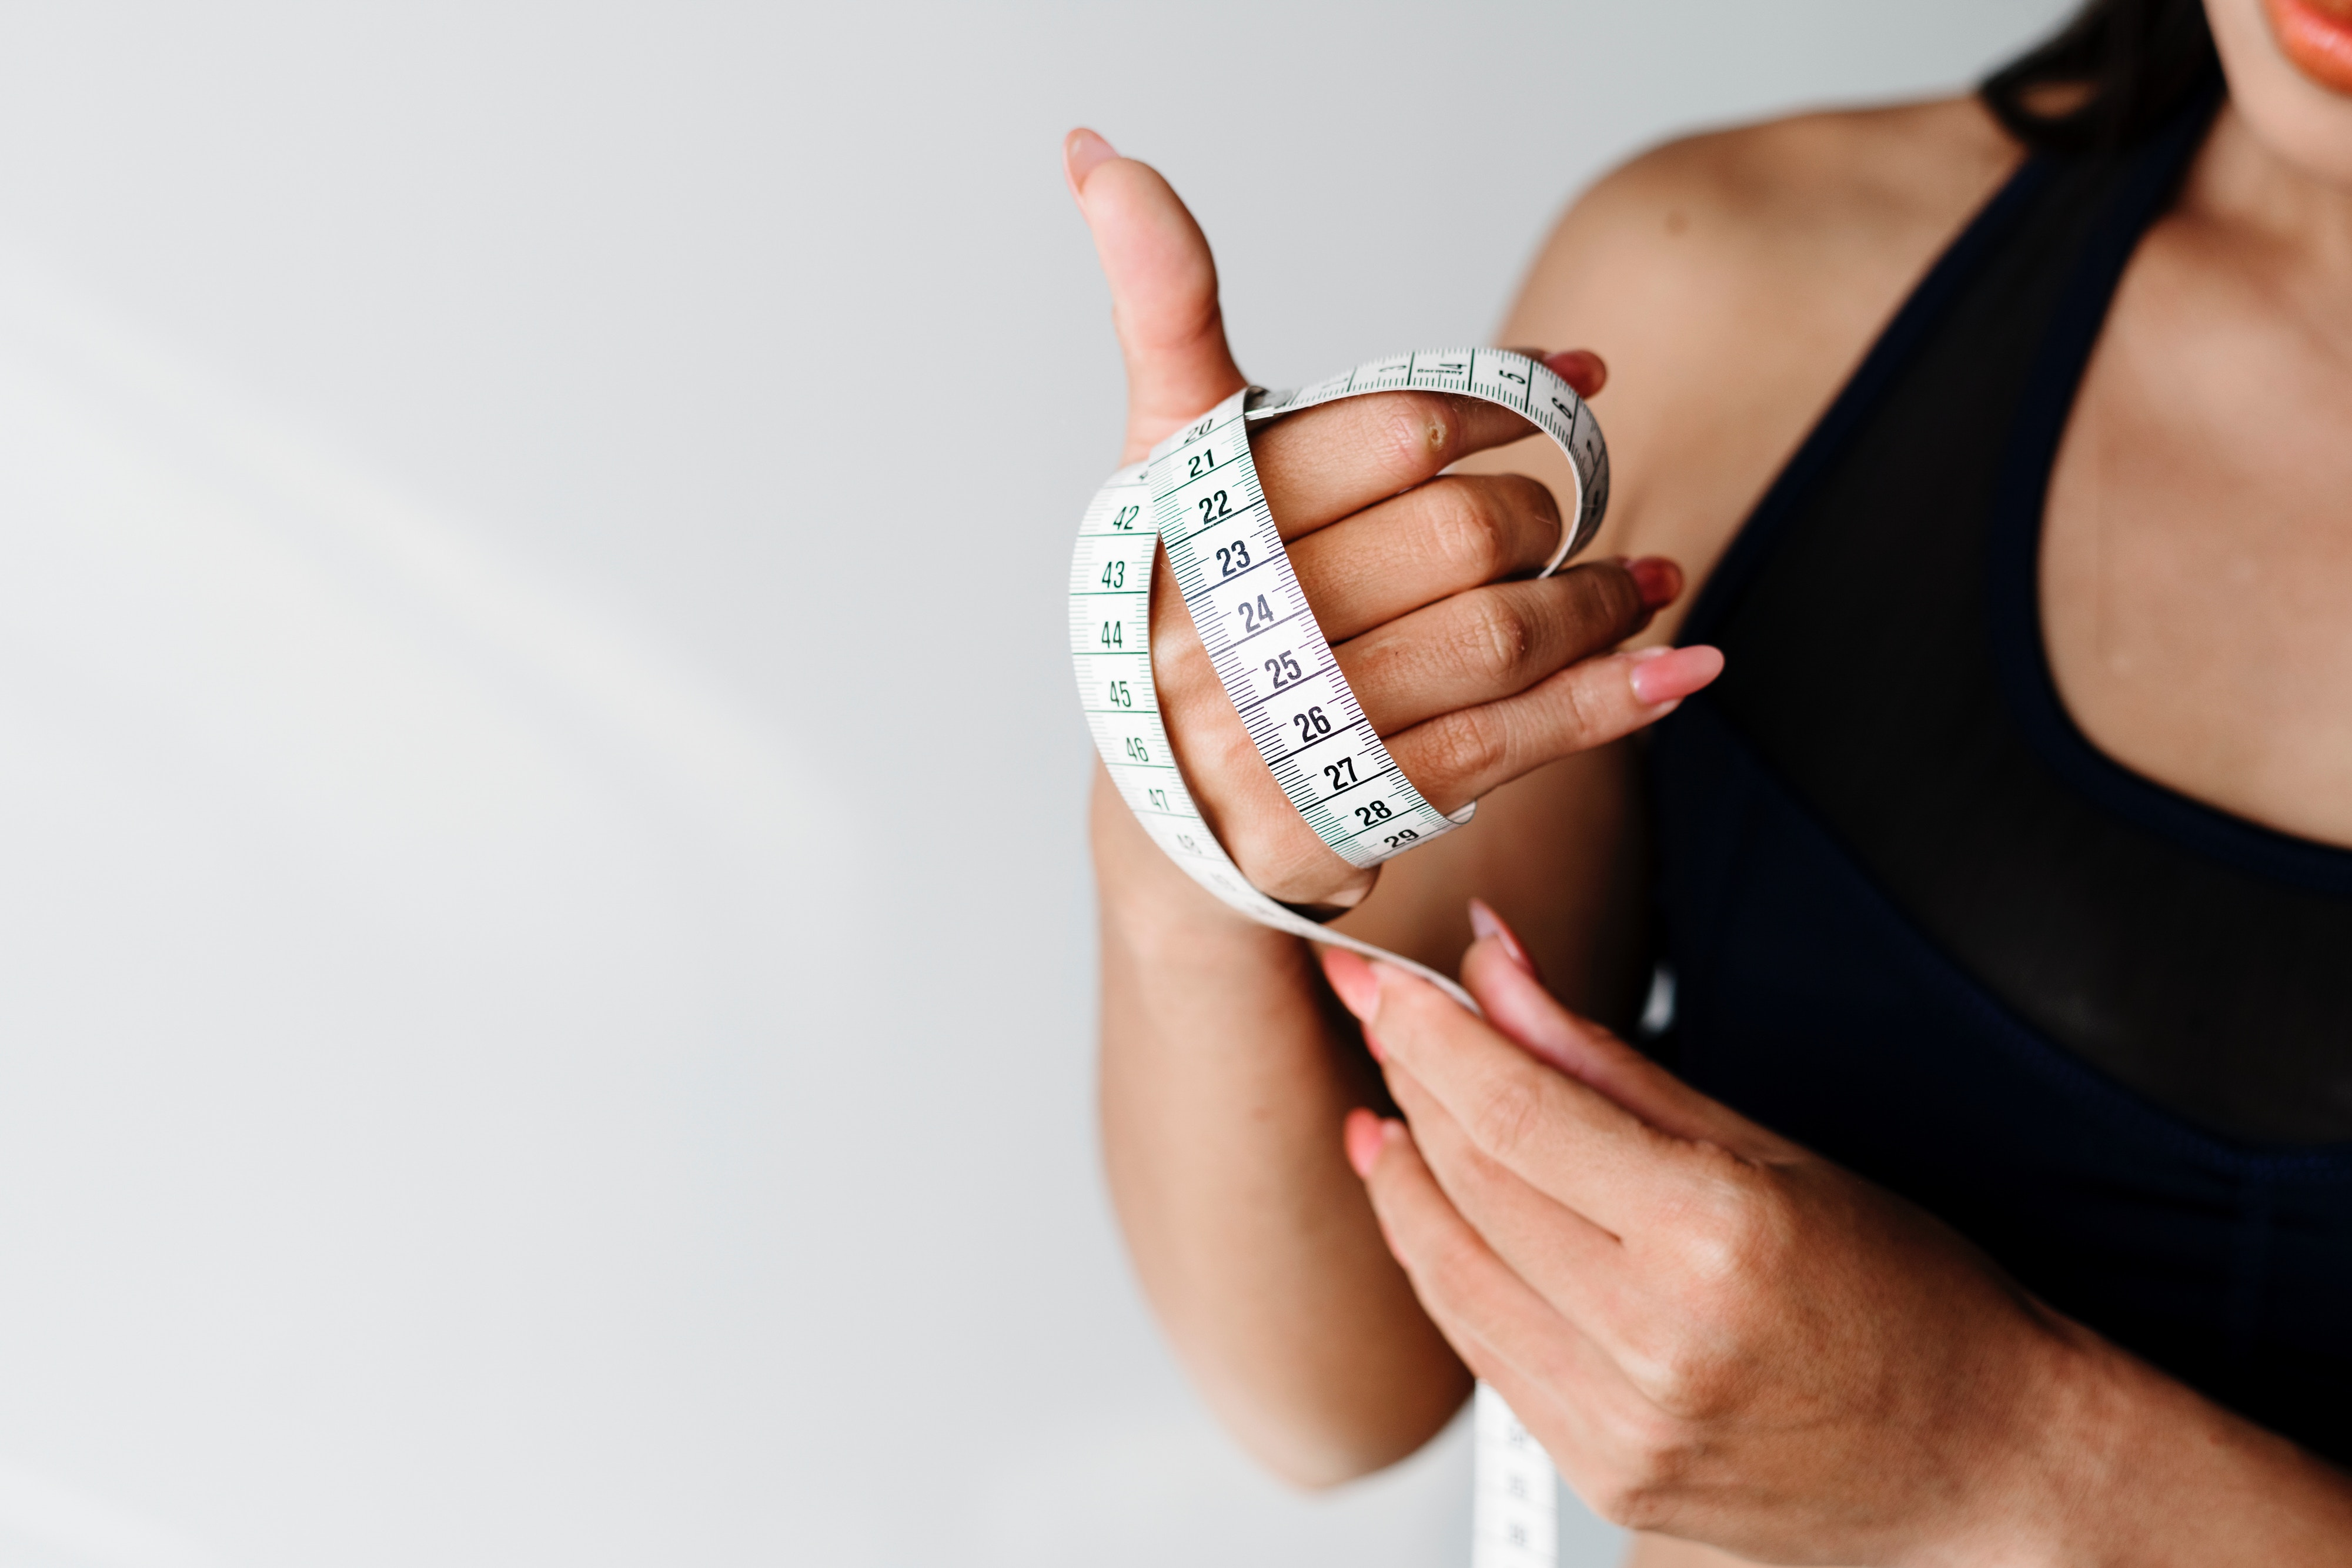 A woman with tape measurement